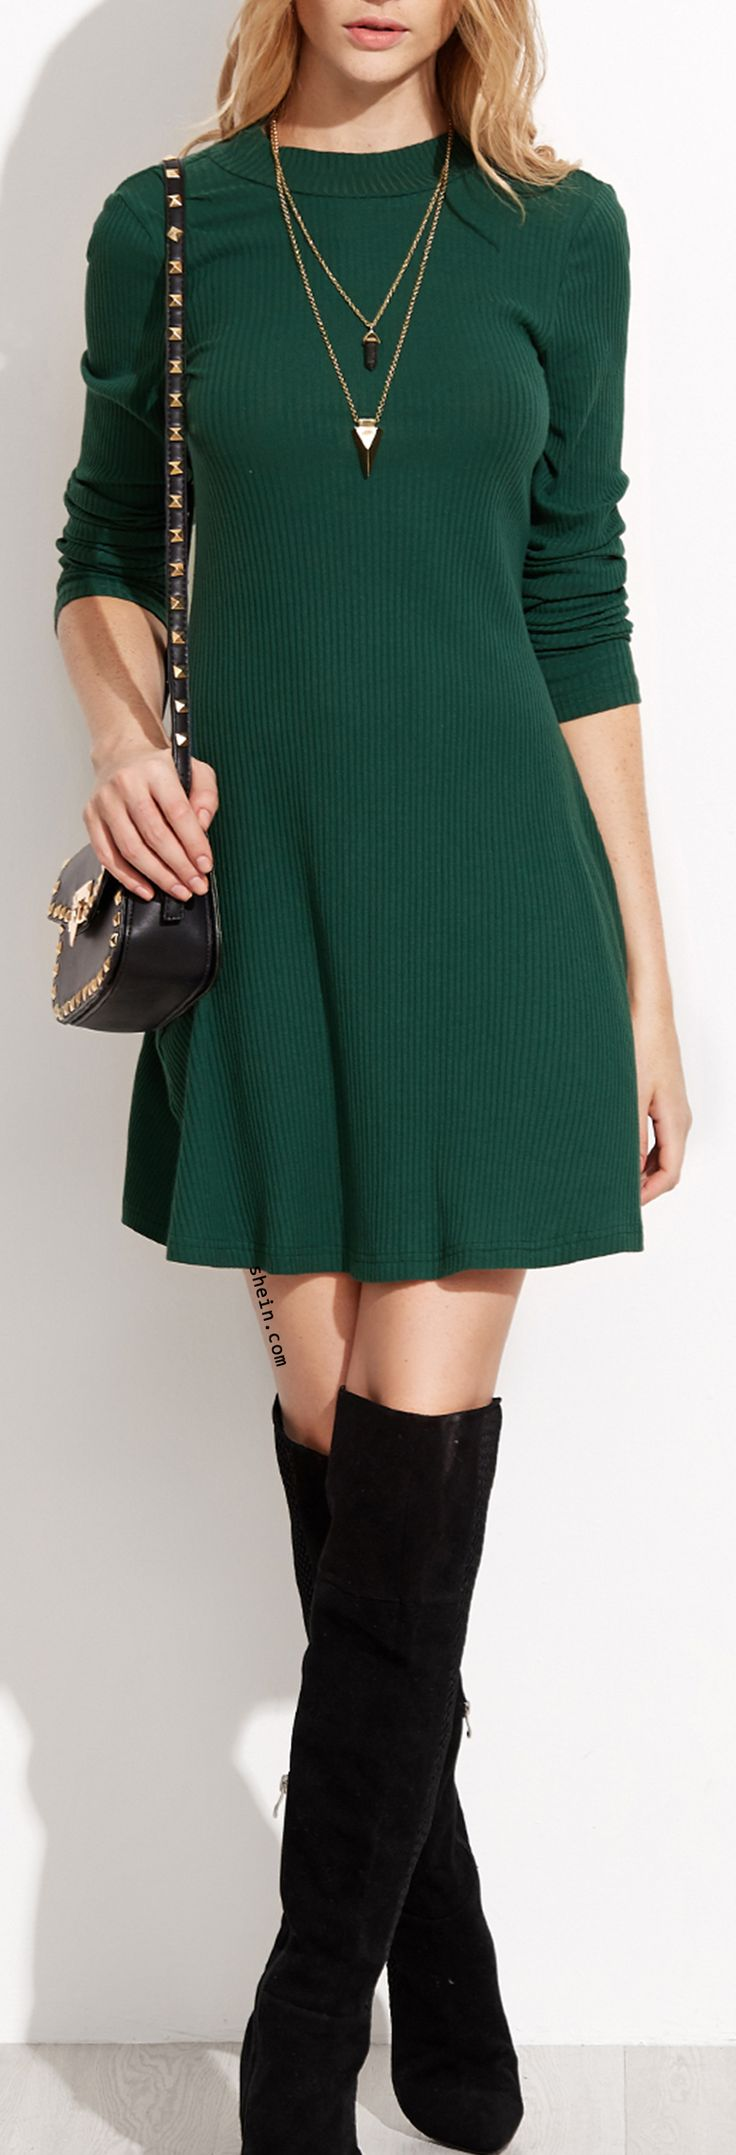 Green Ribbed Skater Dress. Chic with tight high boot.